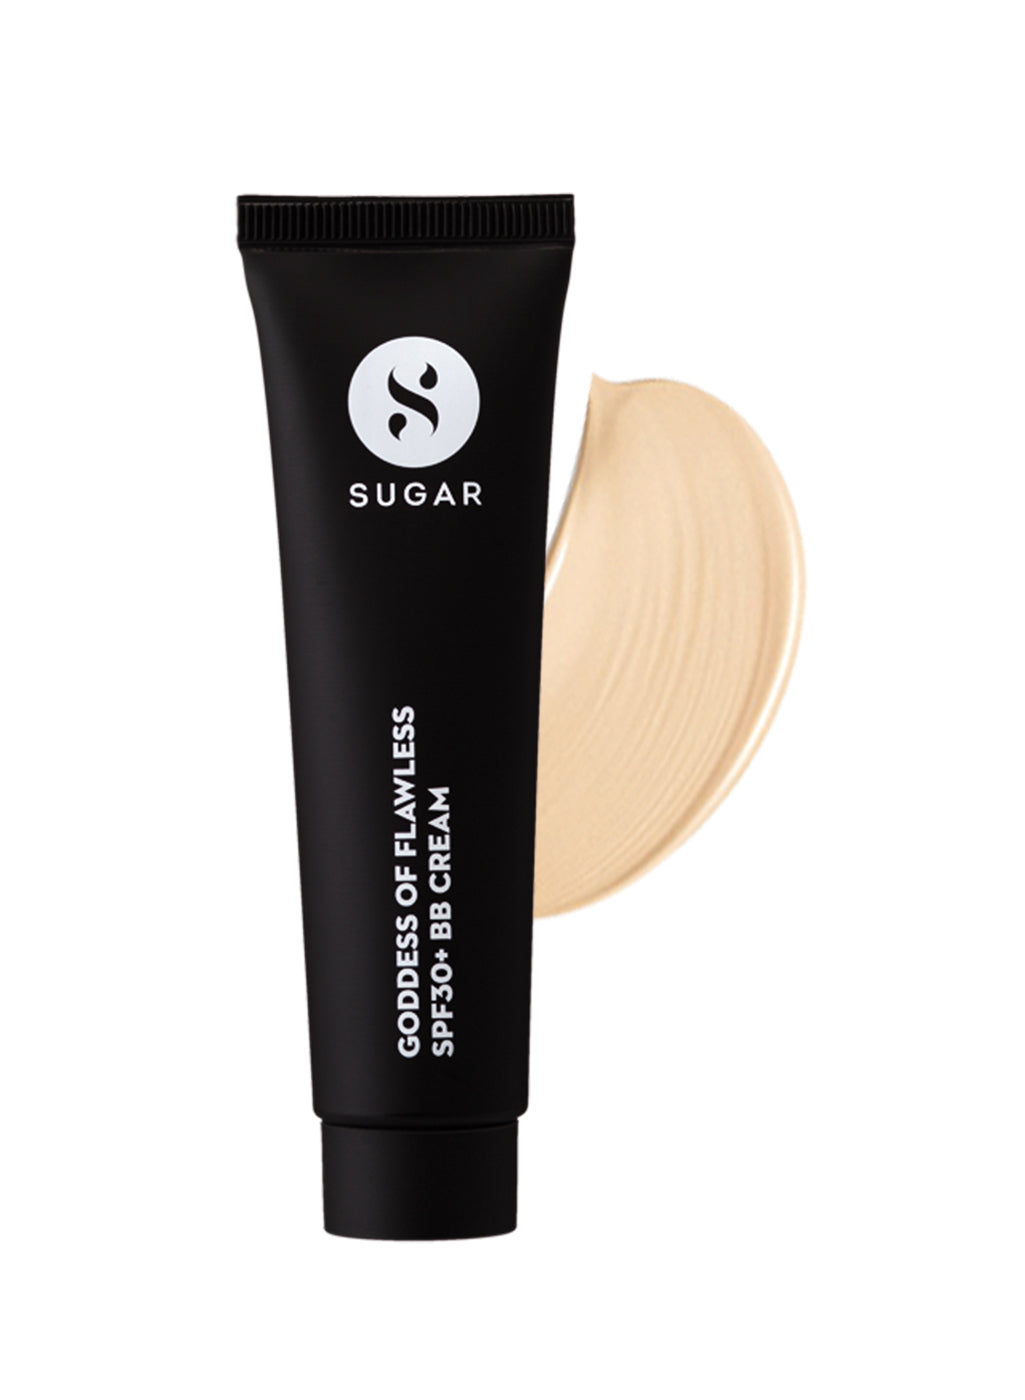 SUGAR Goddess Of Flawless SPF30+ BB Cream - 07 Vanilla Latte (Fair)